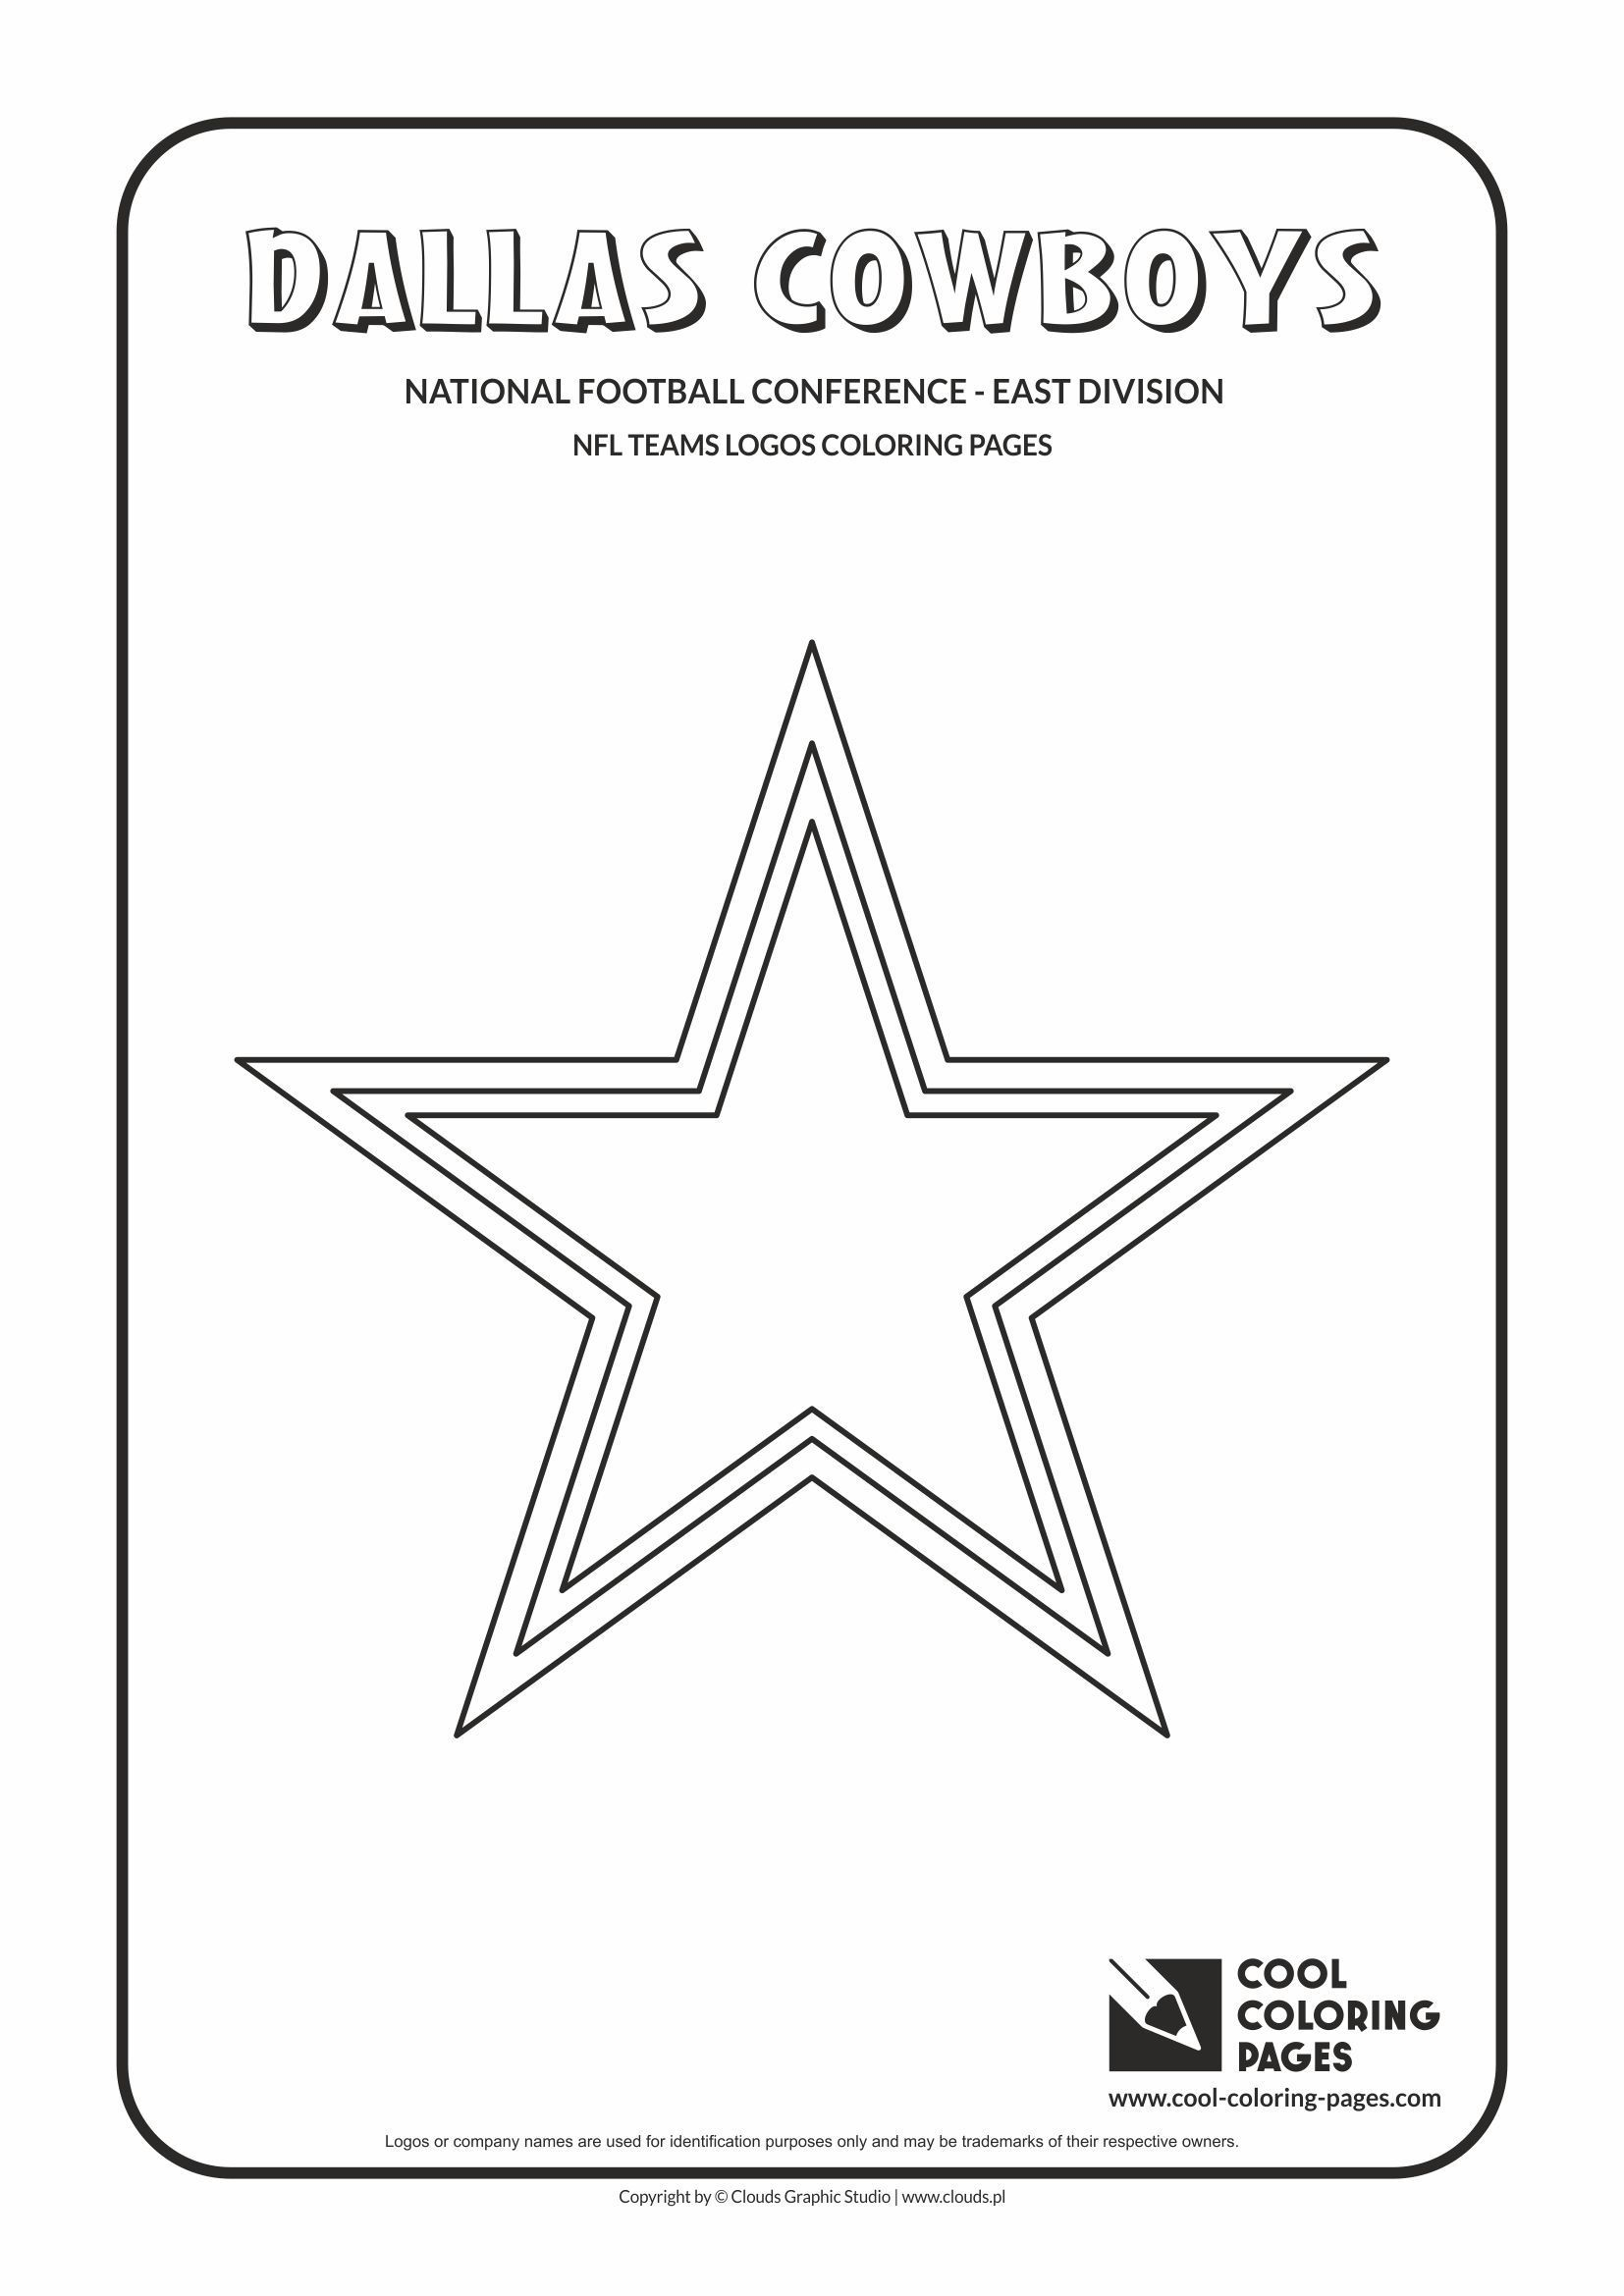 Nfl Logo Coloring Pages For 2019 Http Www Wallpaperartdesignhd Us Nfl Logo Coloring Pages Football Coloring Pages Cool Coloring Pages Coloring Pages To Print